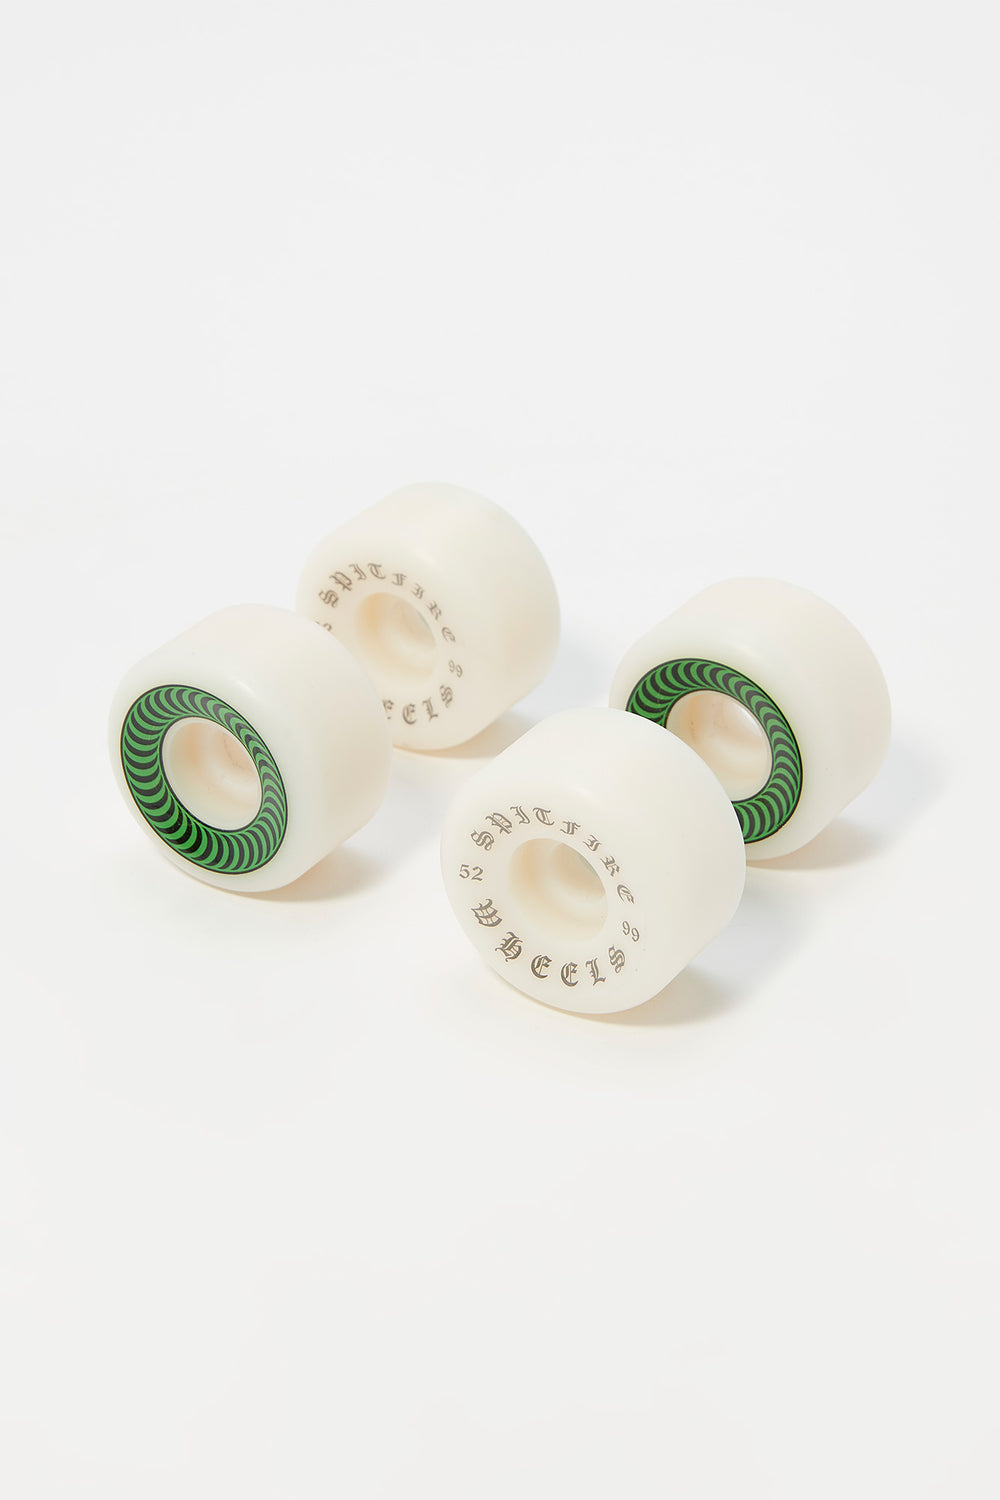 Spitfire Original Classic Wheels 52mm Spitfire Original Classic Wheels 52mm